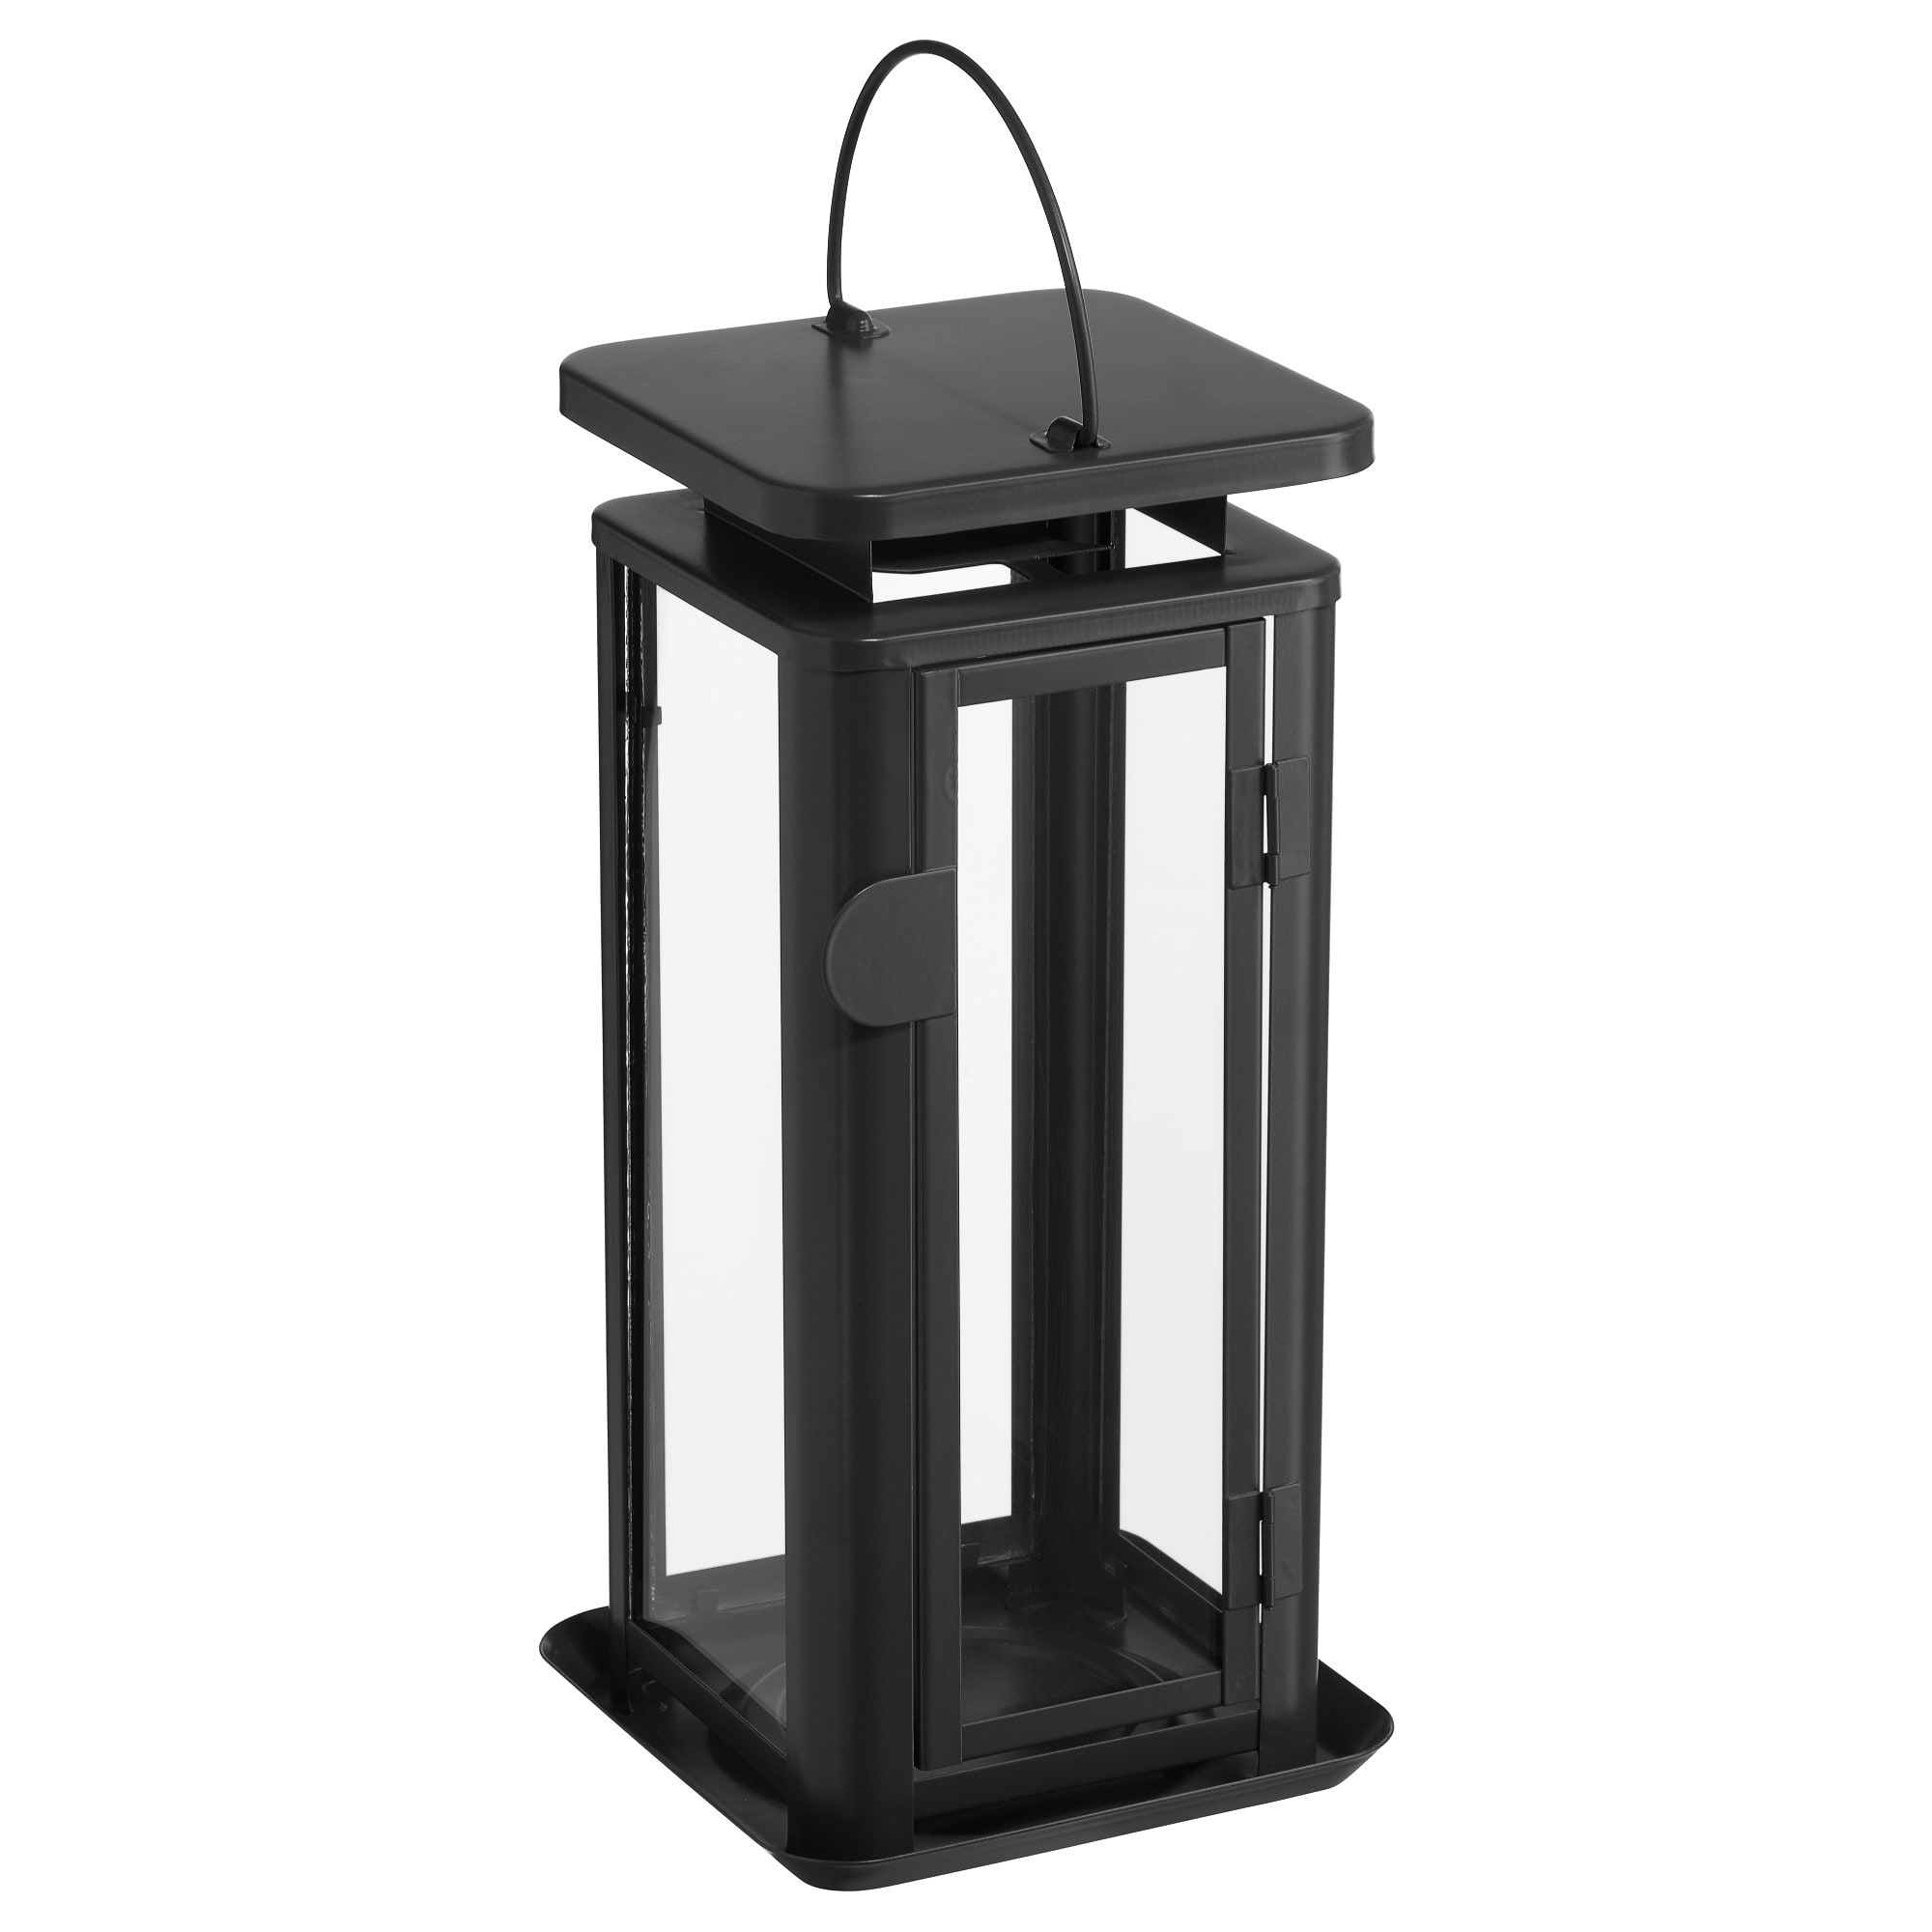 Inexpensive Outdoor Lanterns Intended For 2019 Lanterns & Candle Lanterns – Ikea (View 16 of 20)